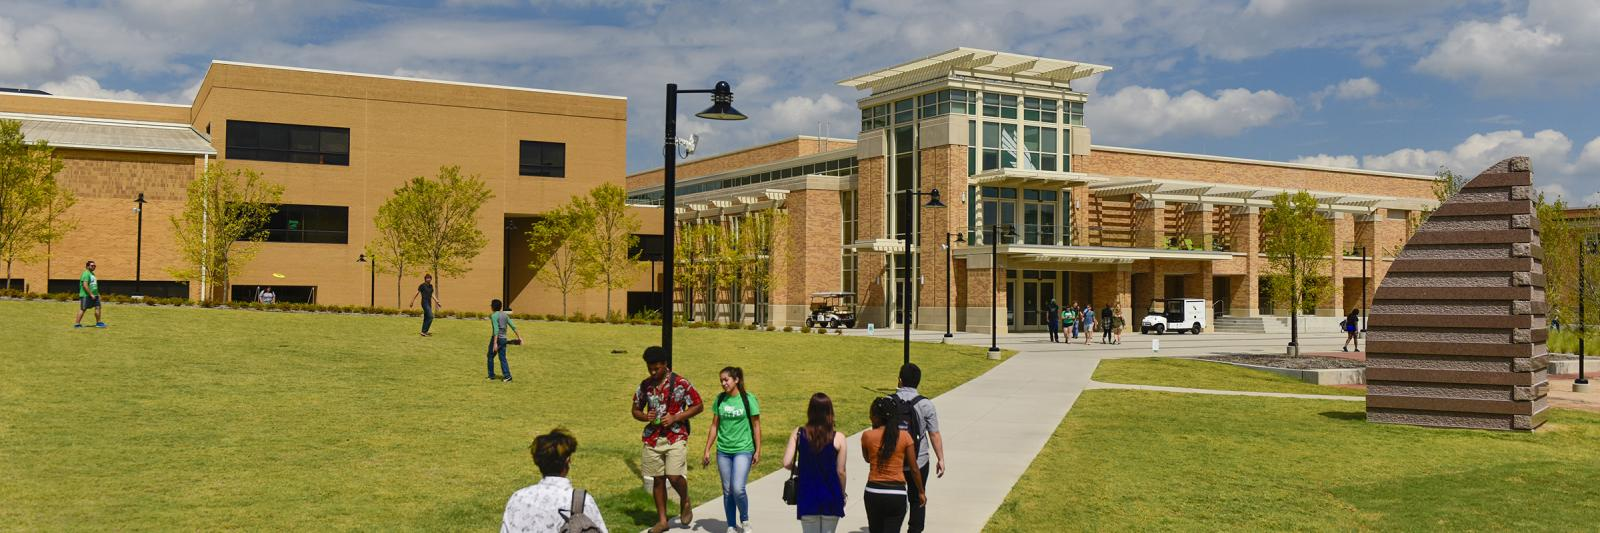 UNT Student Union Building